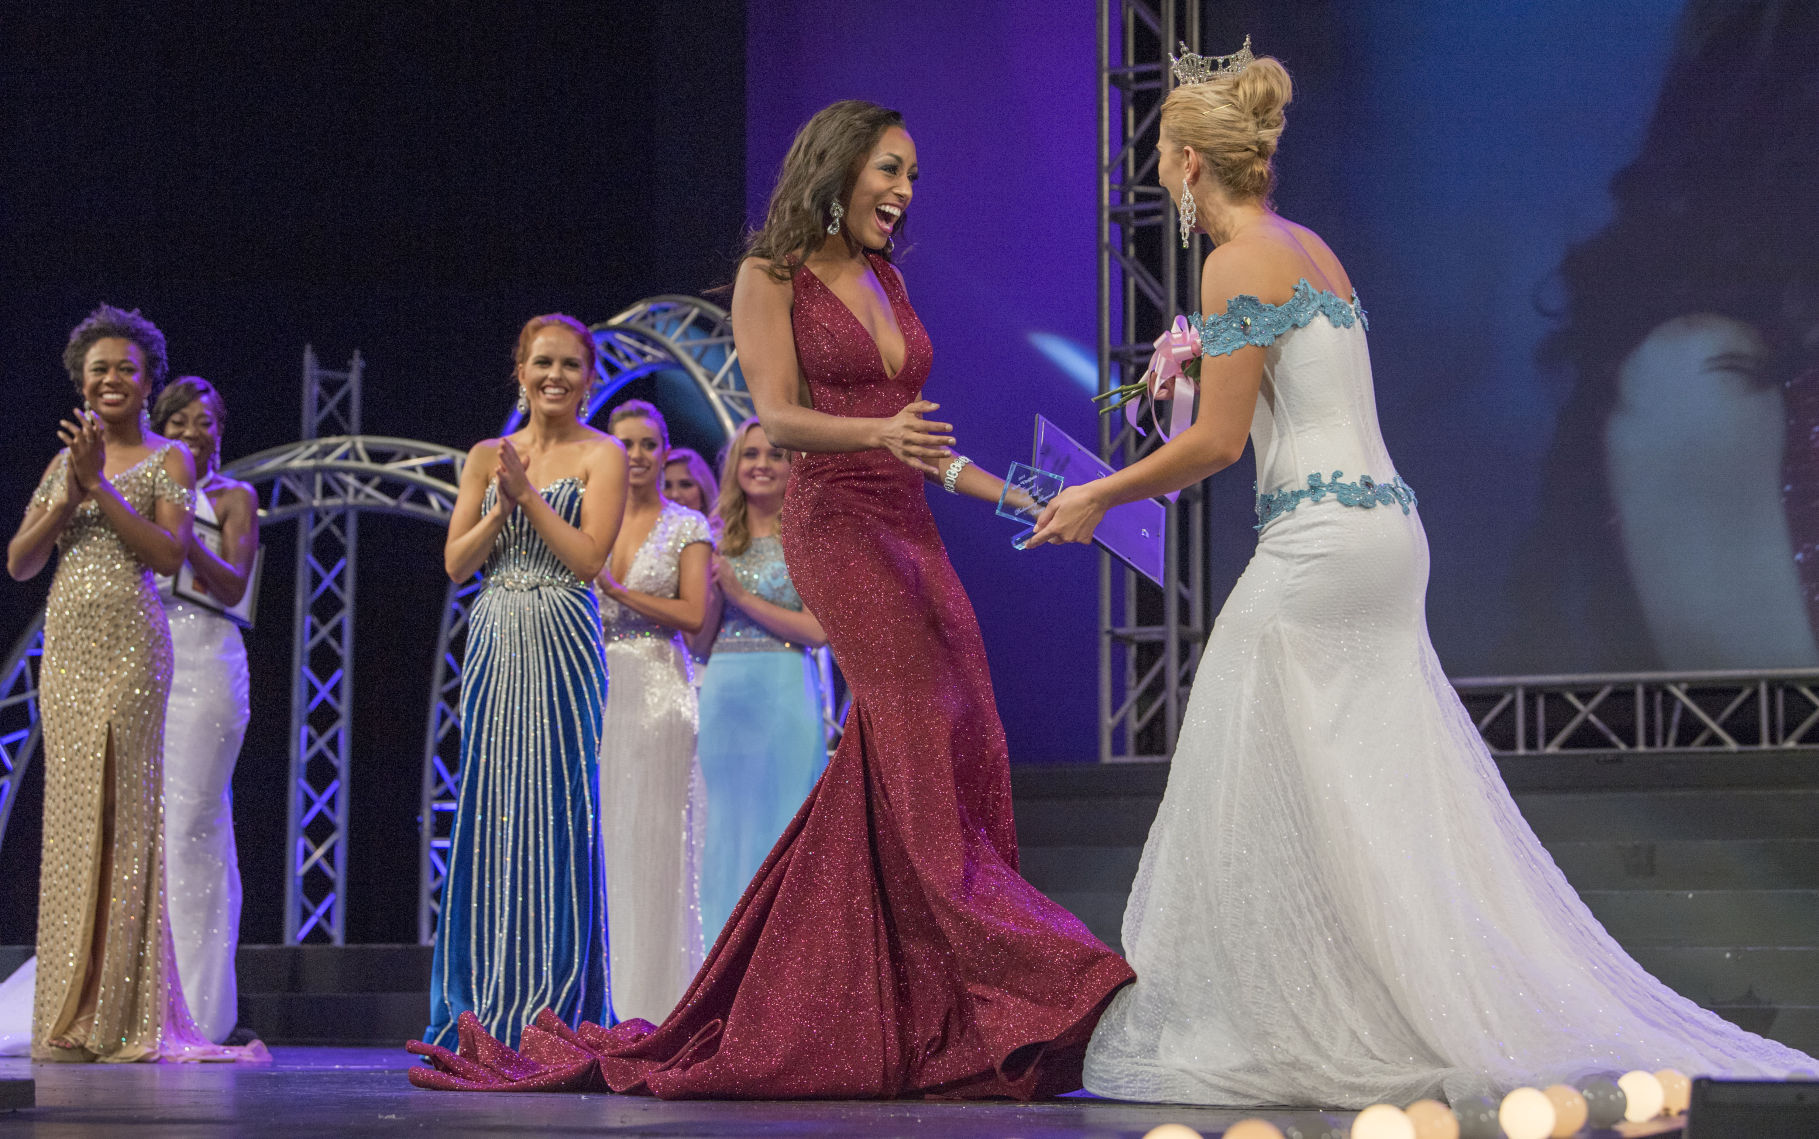 Miss Shreveport crowned Miss Louisiana 2017